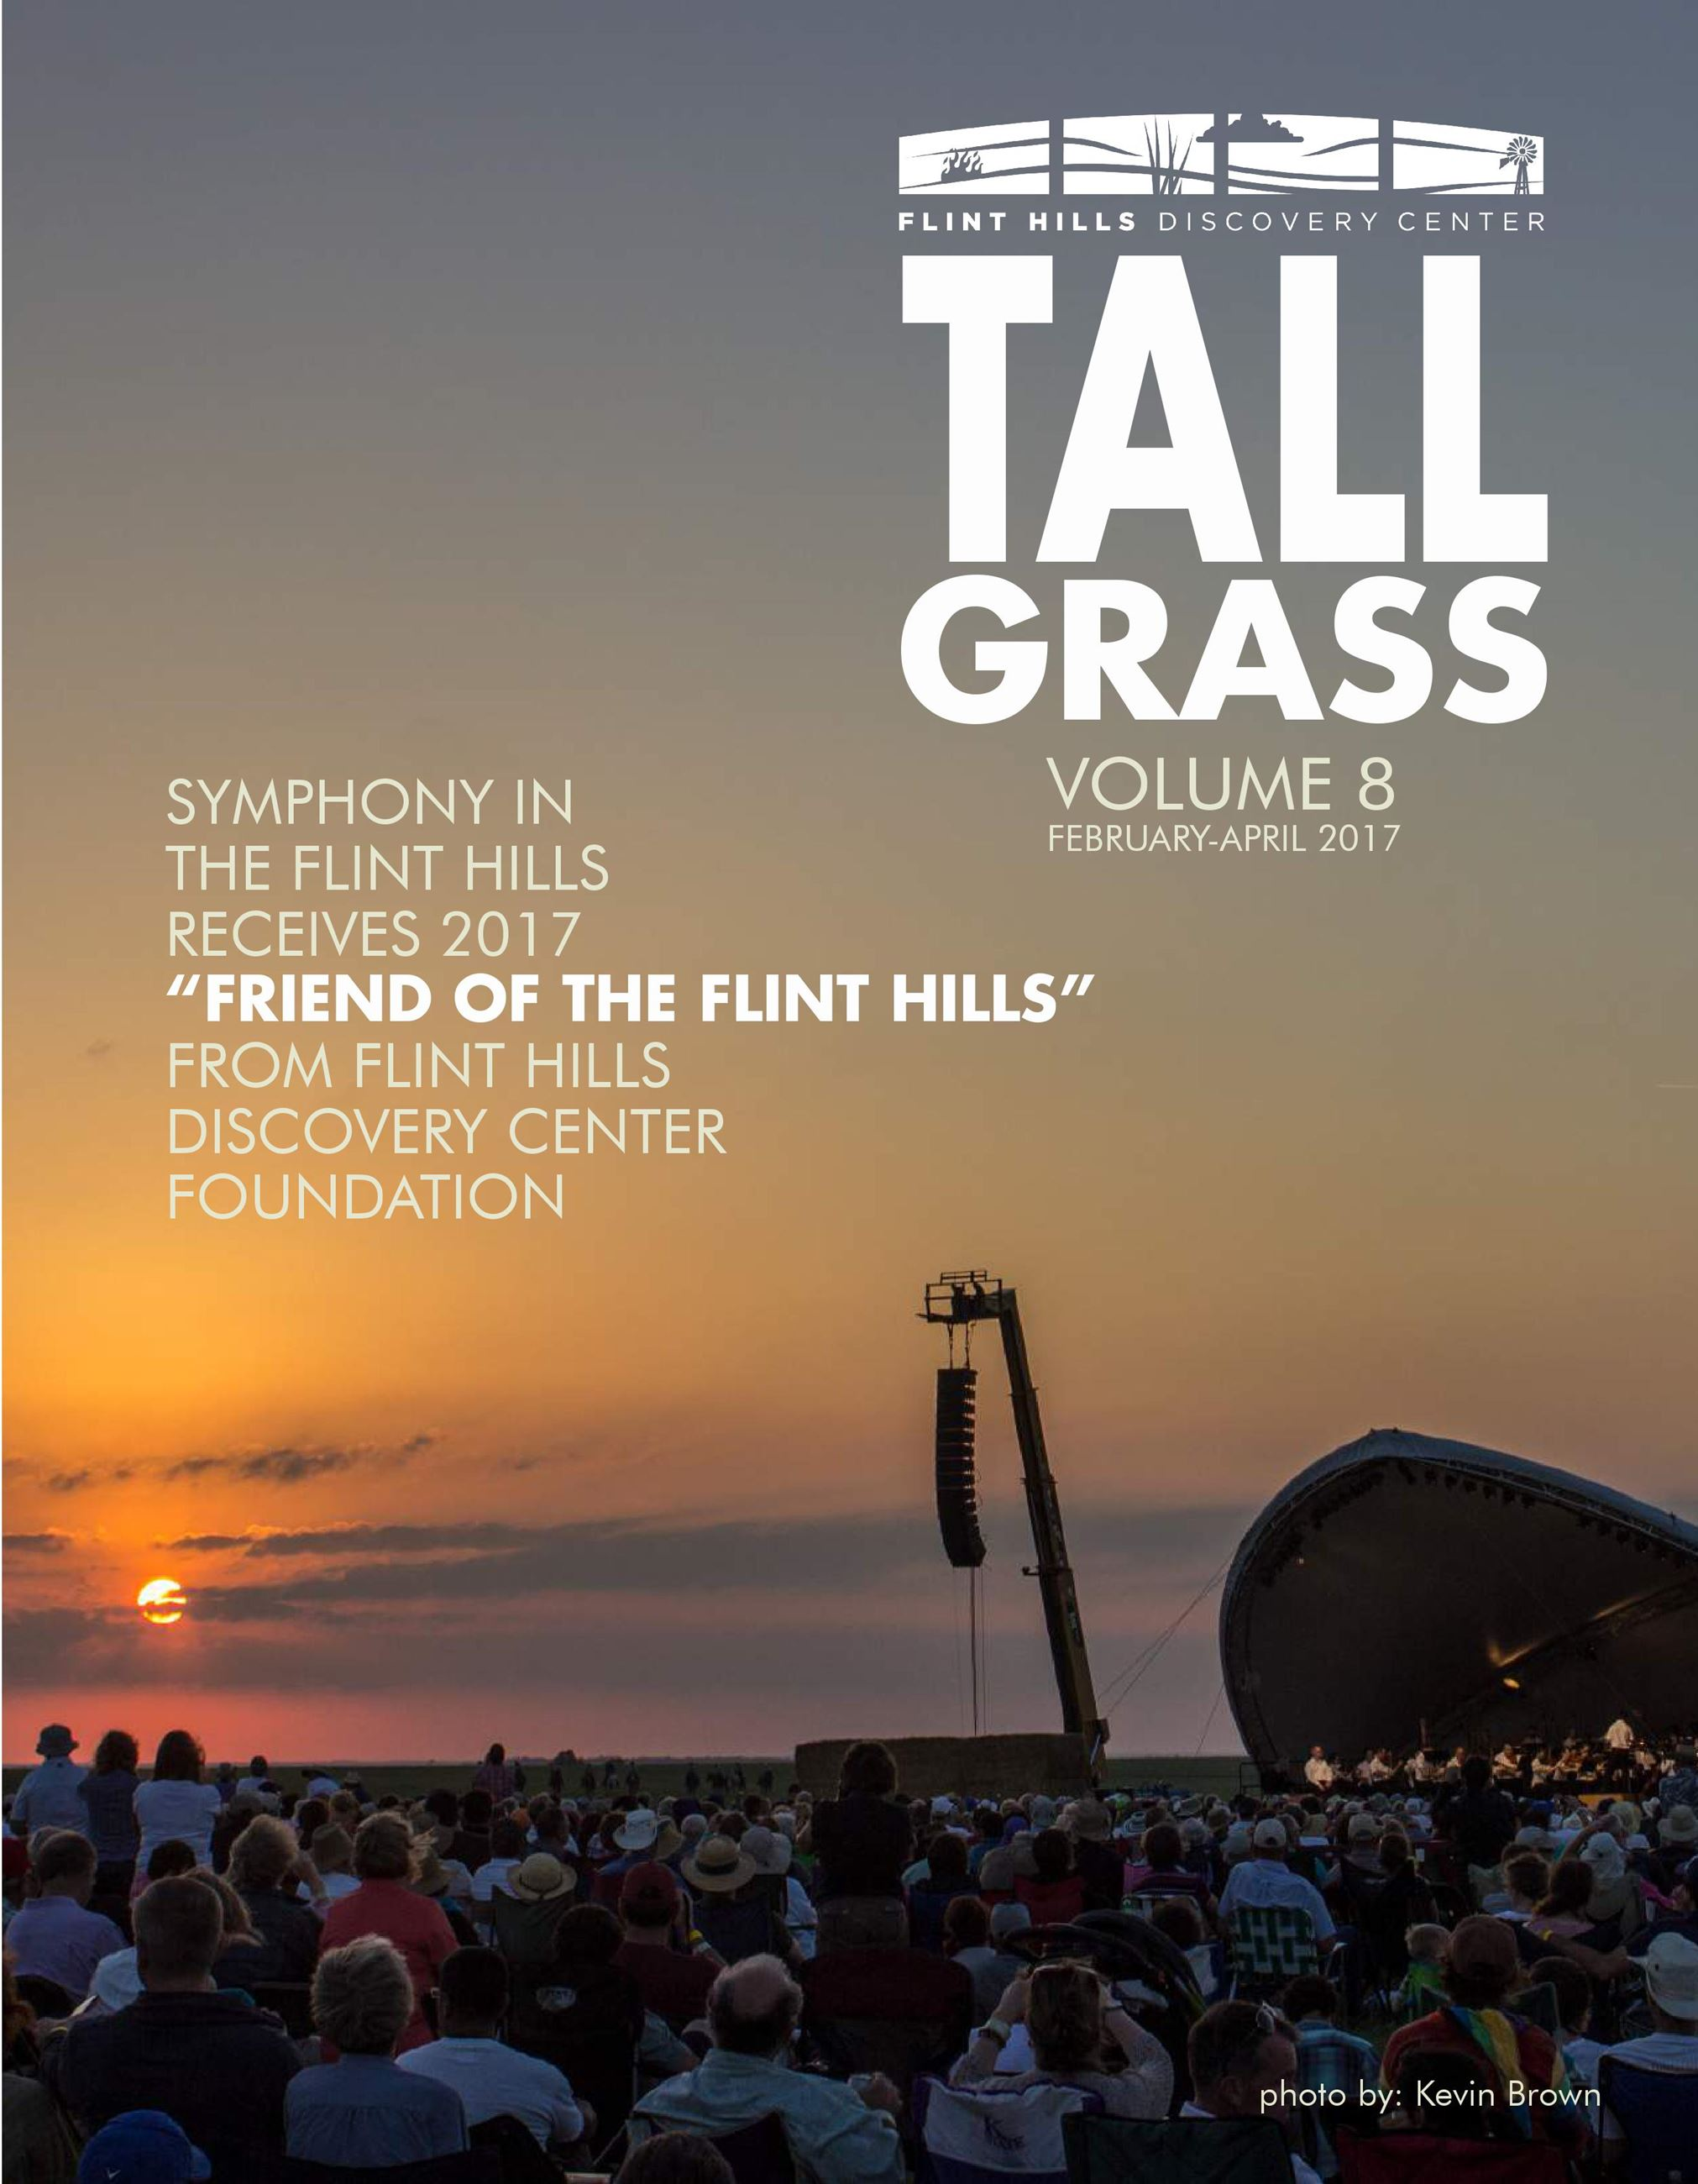 Tallgrass Volume 8